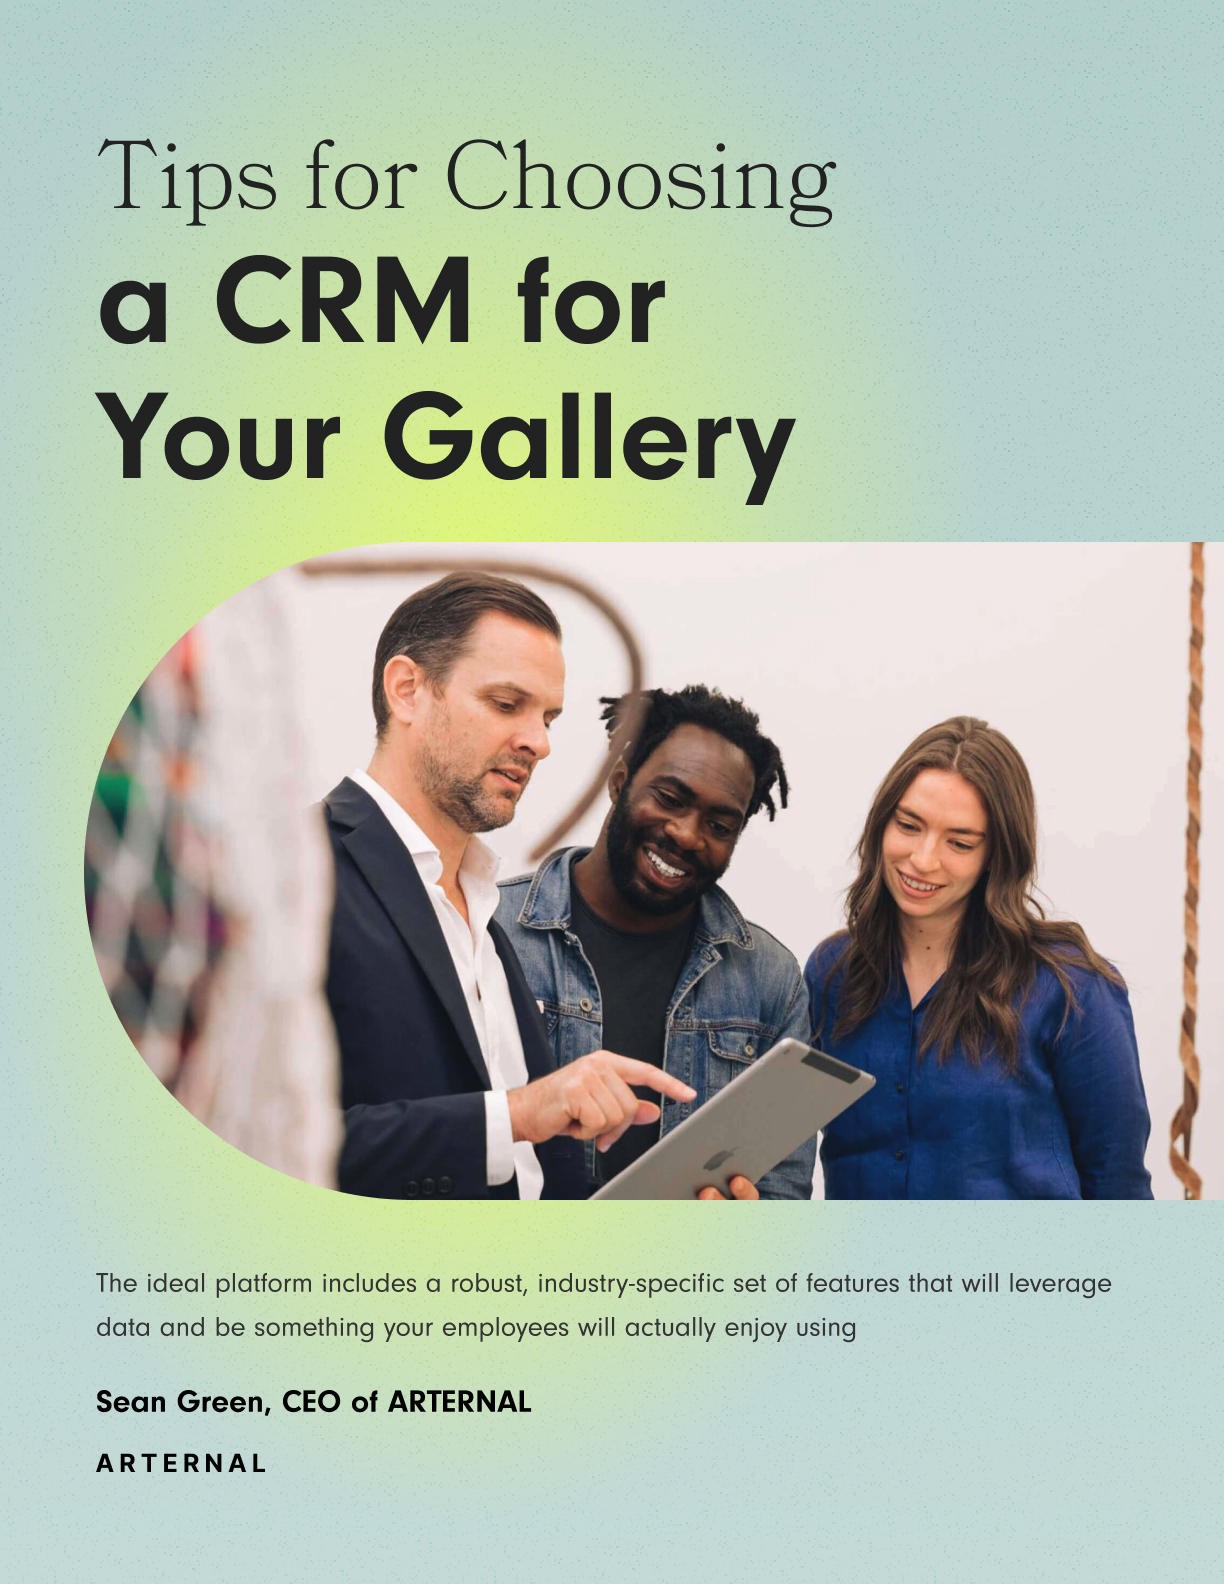 Tips for Choosing a CRM for Your Gallery